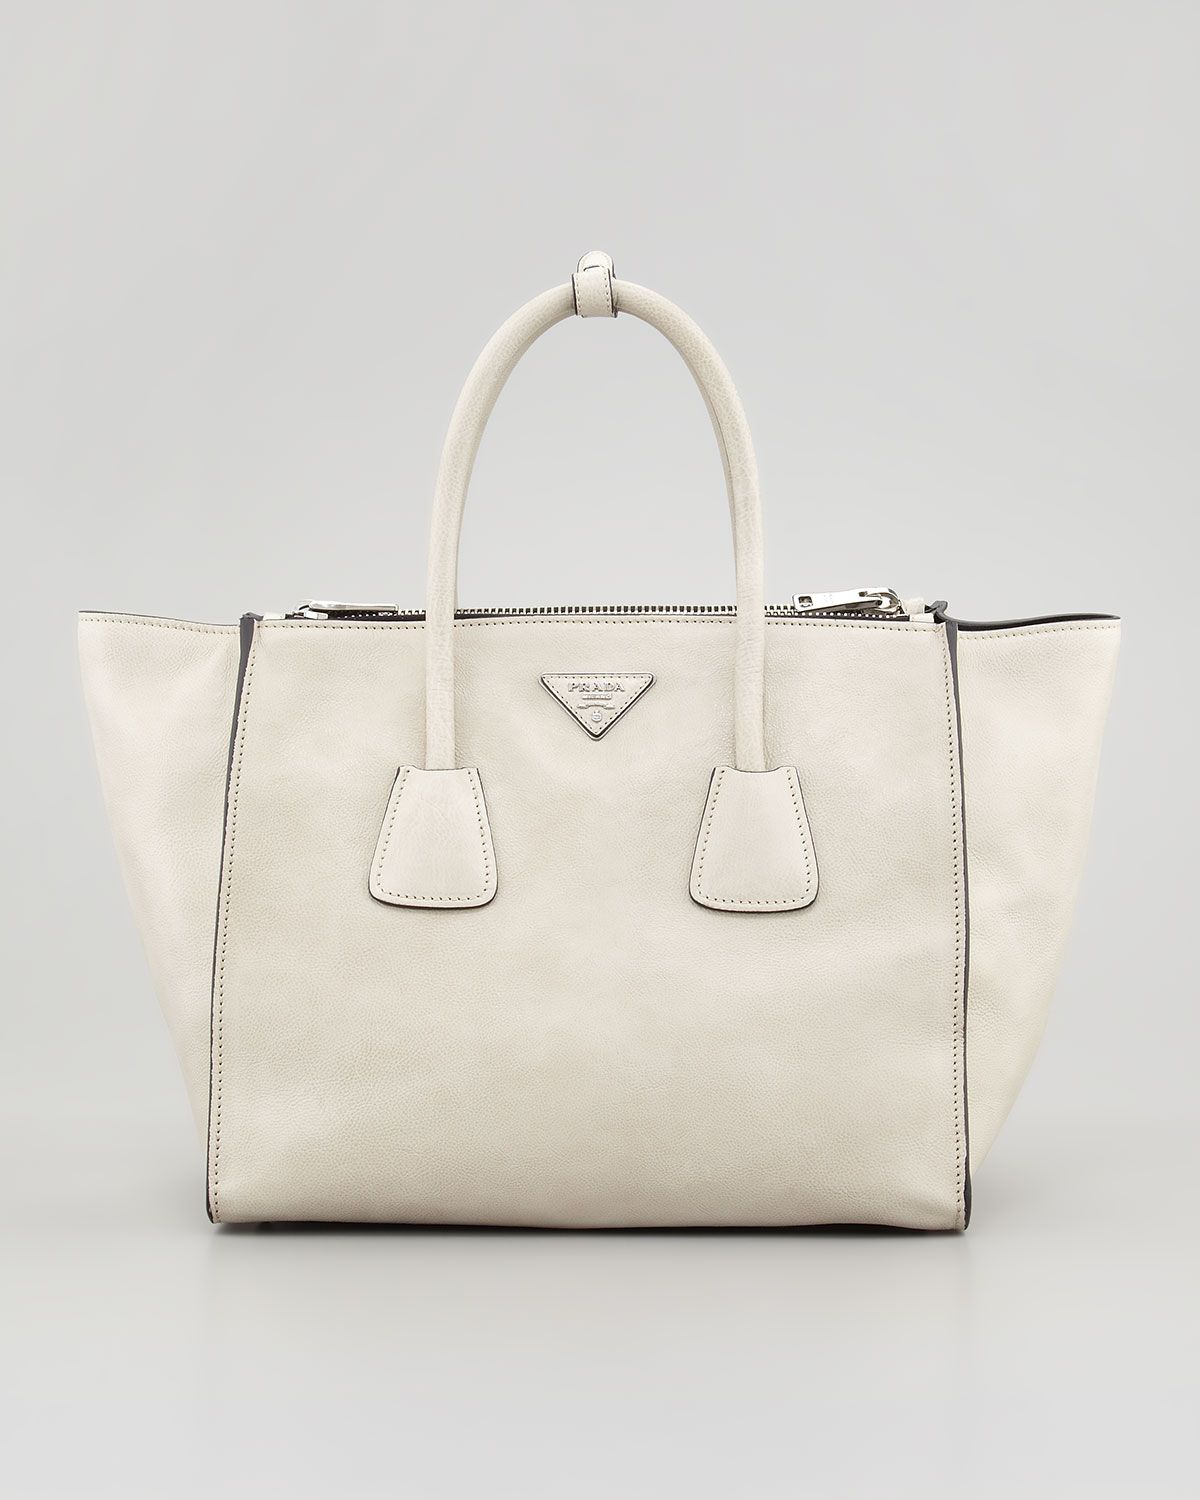 112c34eb279e Prada Glace Calf Twin Pocket Tote Bag, Off White - Bergdorf Goodman ...